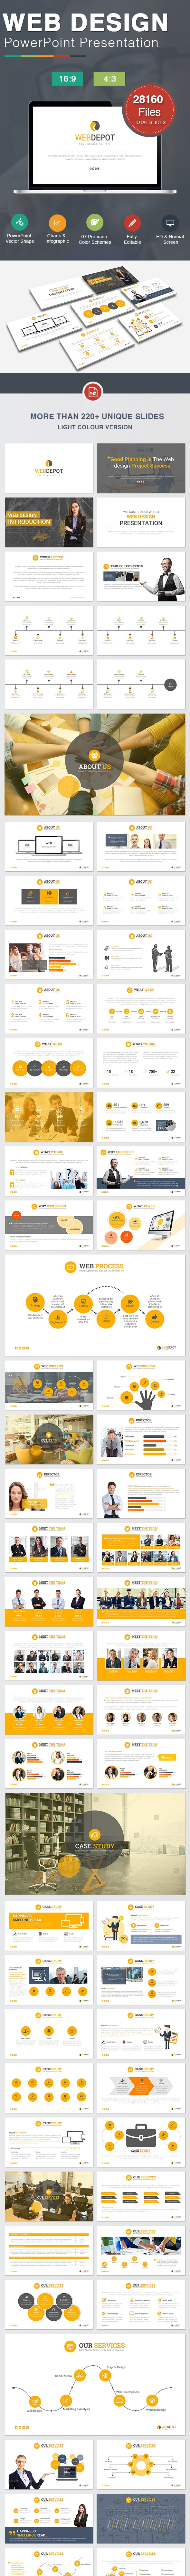 Web Design Powerpoint - Creative PowerPoint Templates